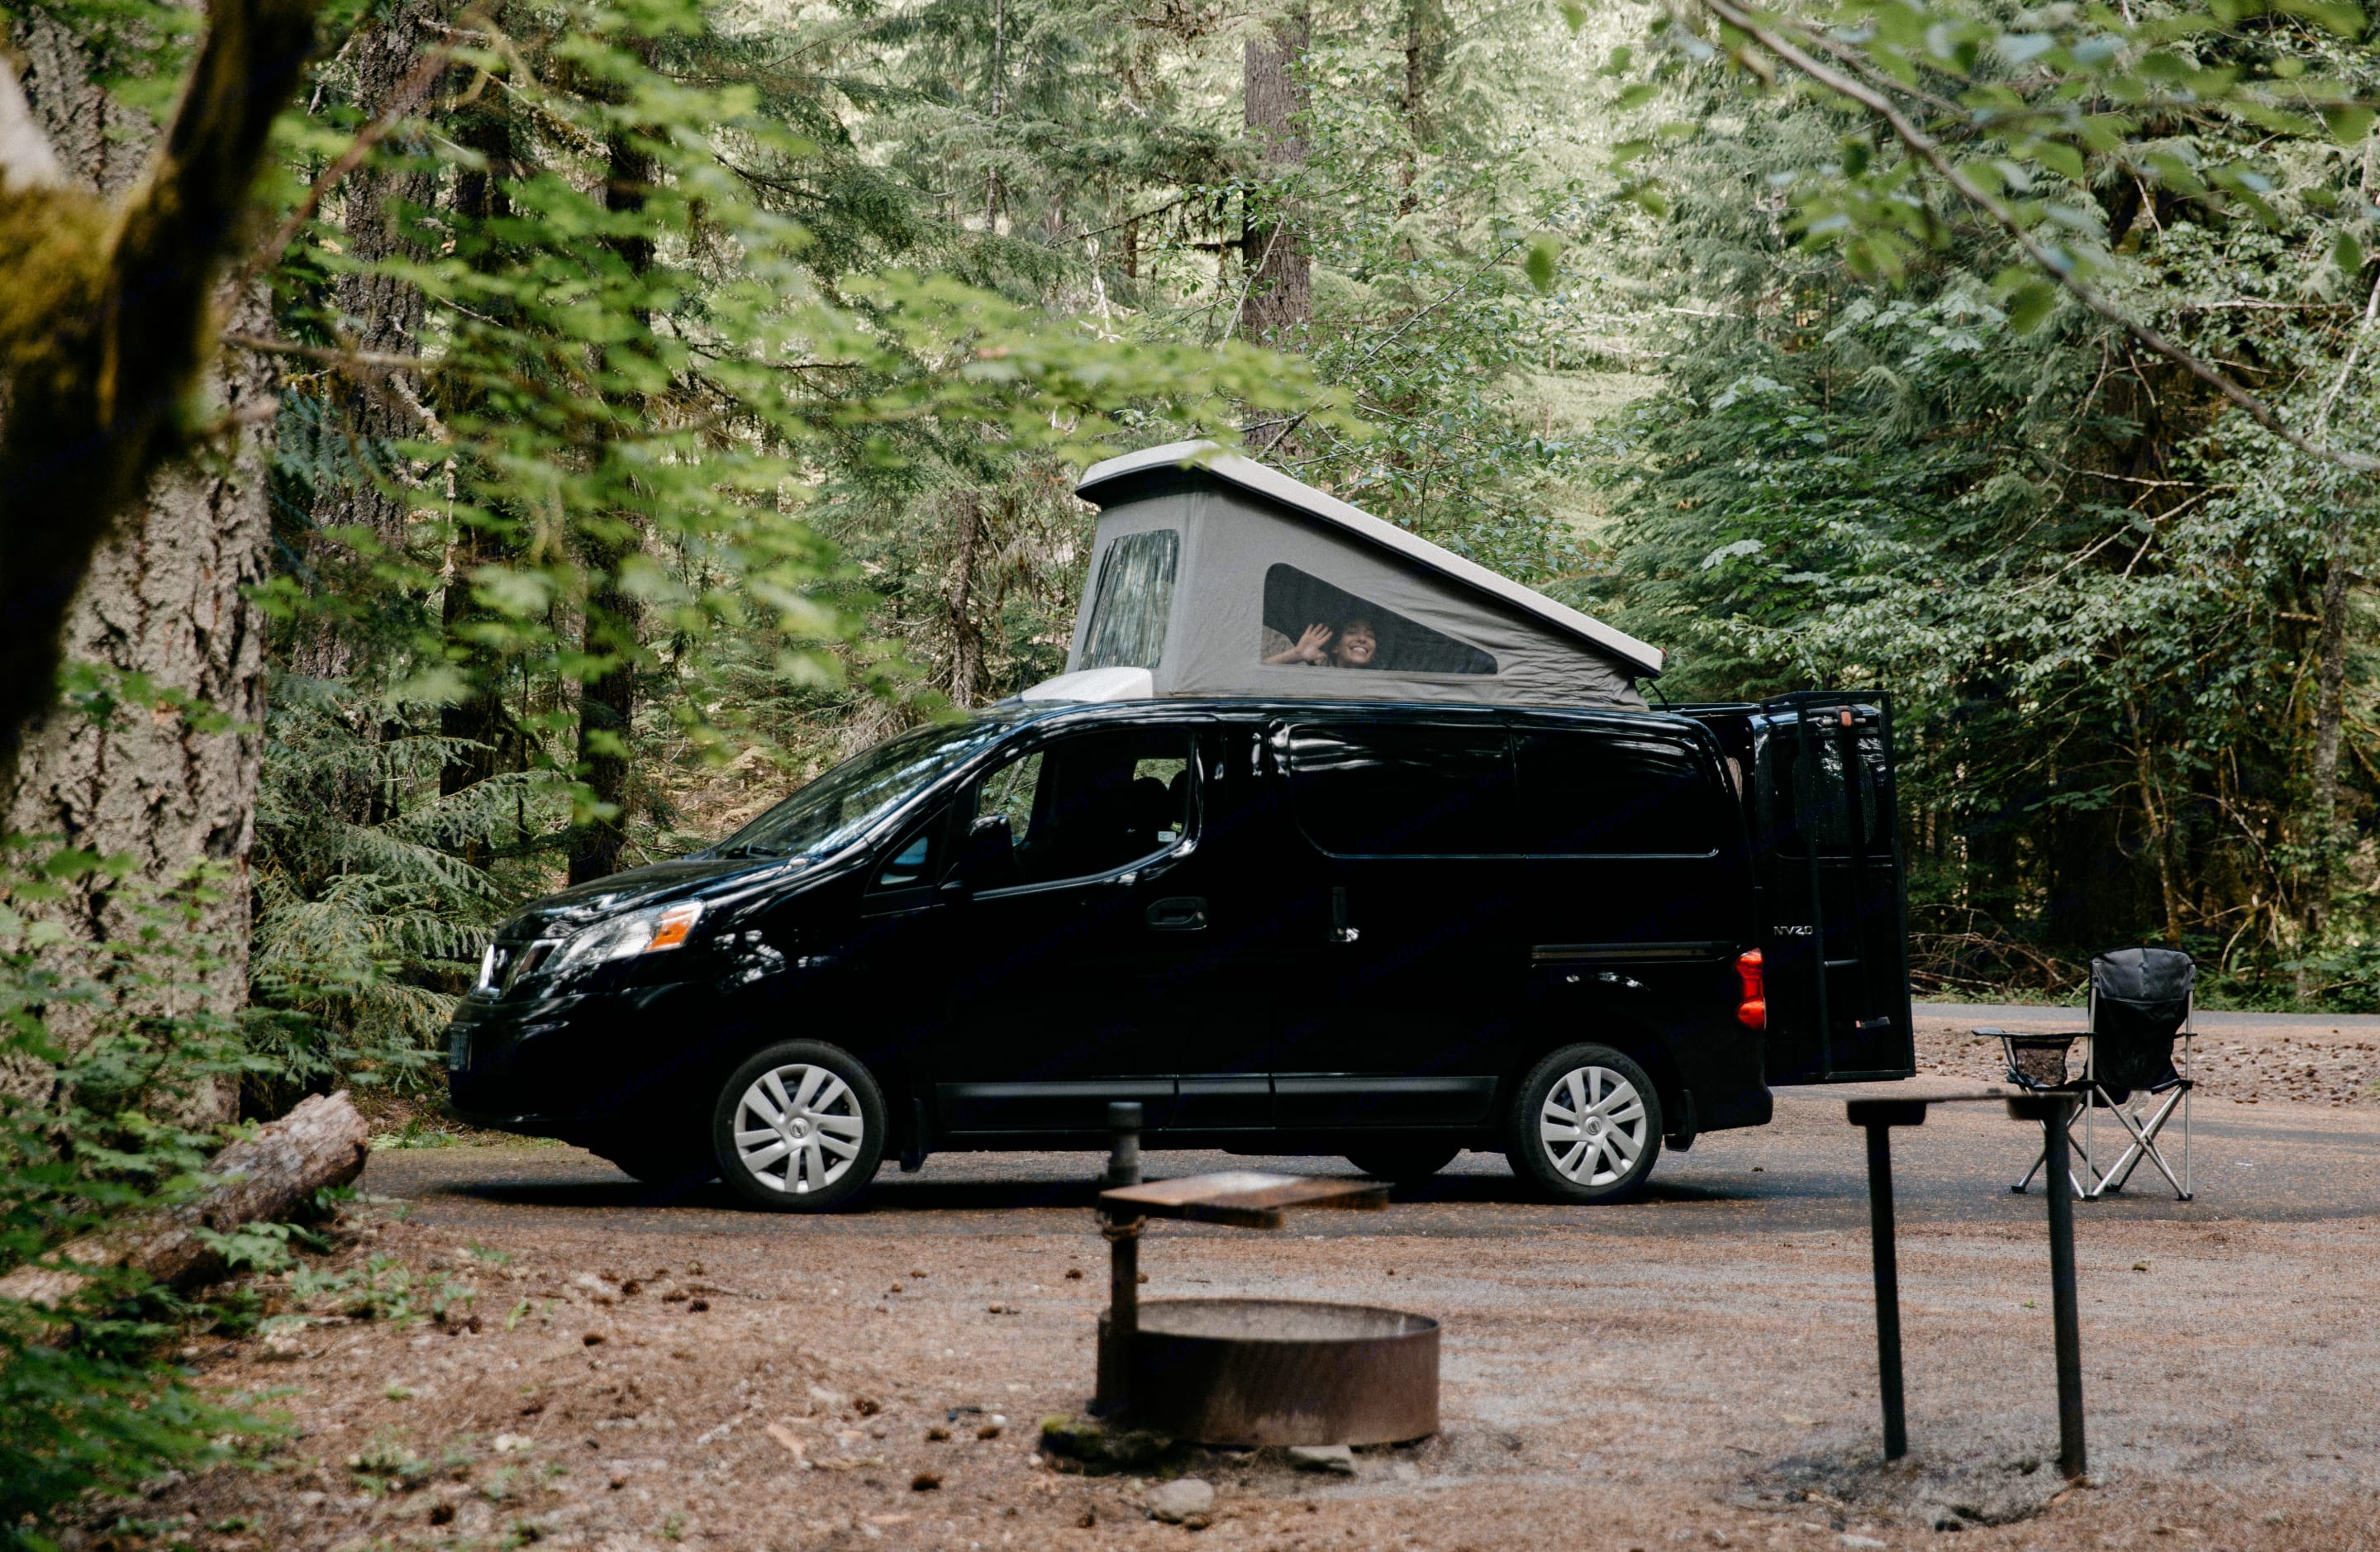 Vanna is a 2015 Nissan that boasts the fuel efficiency of a car at  24/26 mpg with all the conveniences of a camper van.. Nissan Camper Van 2015